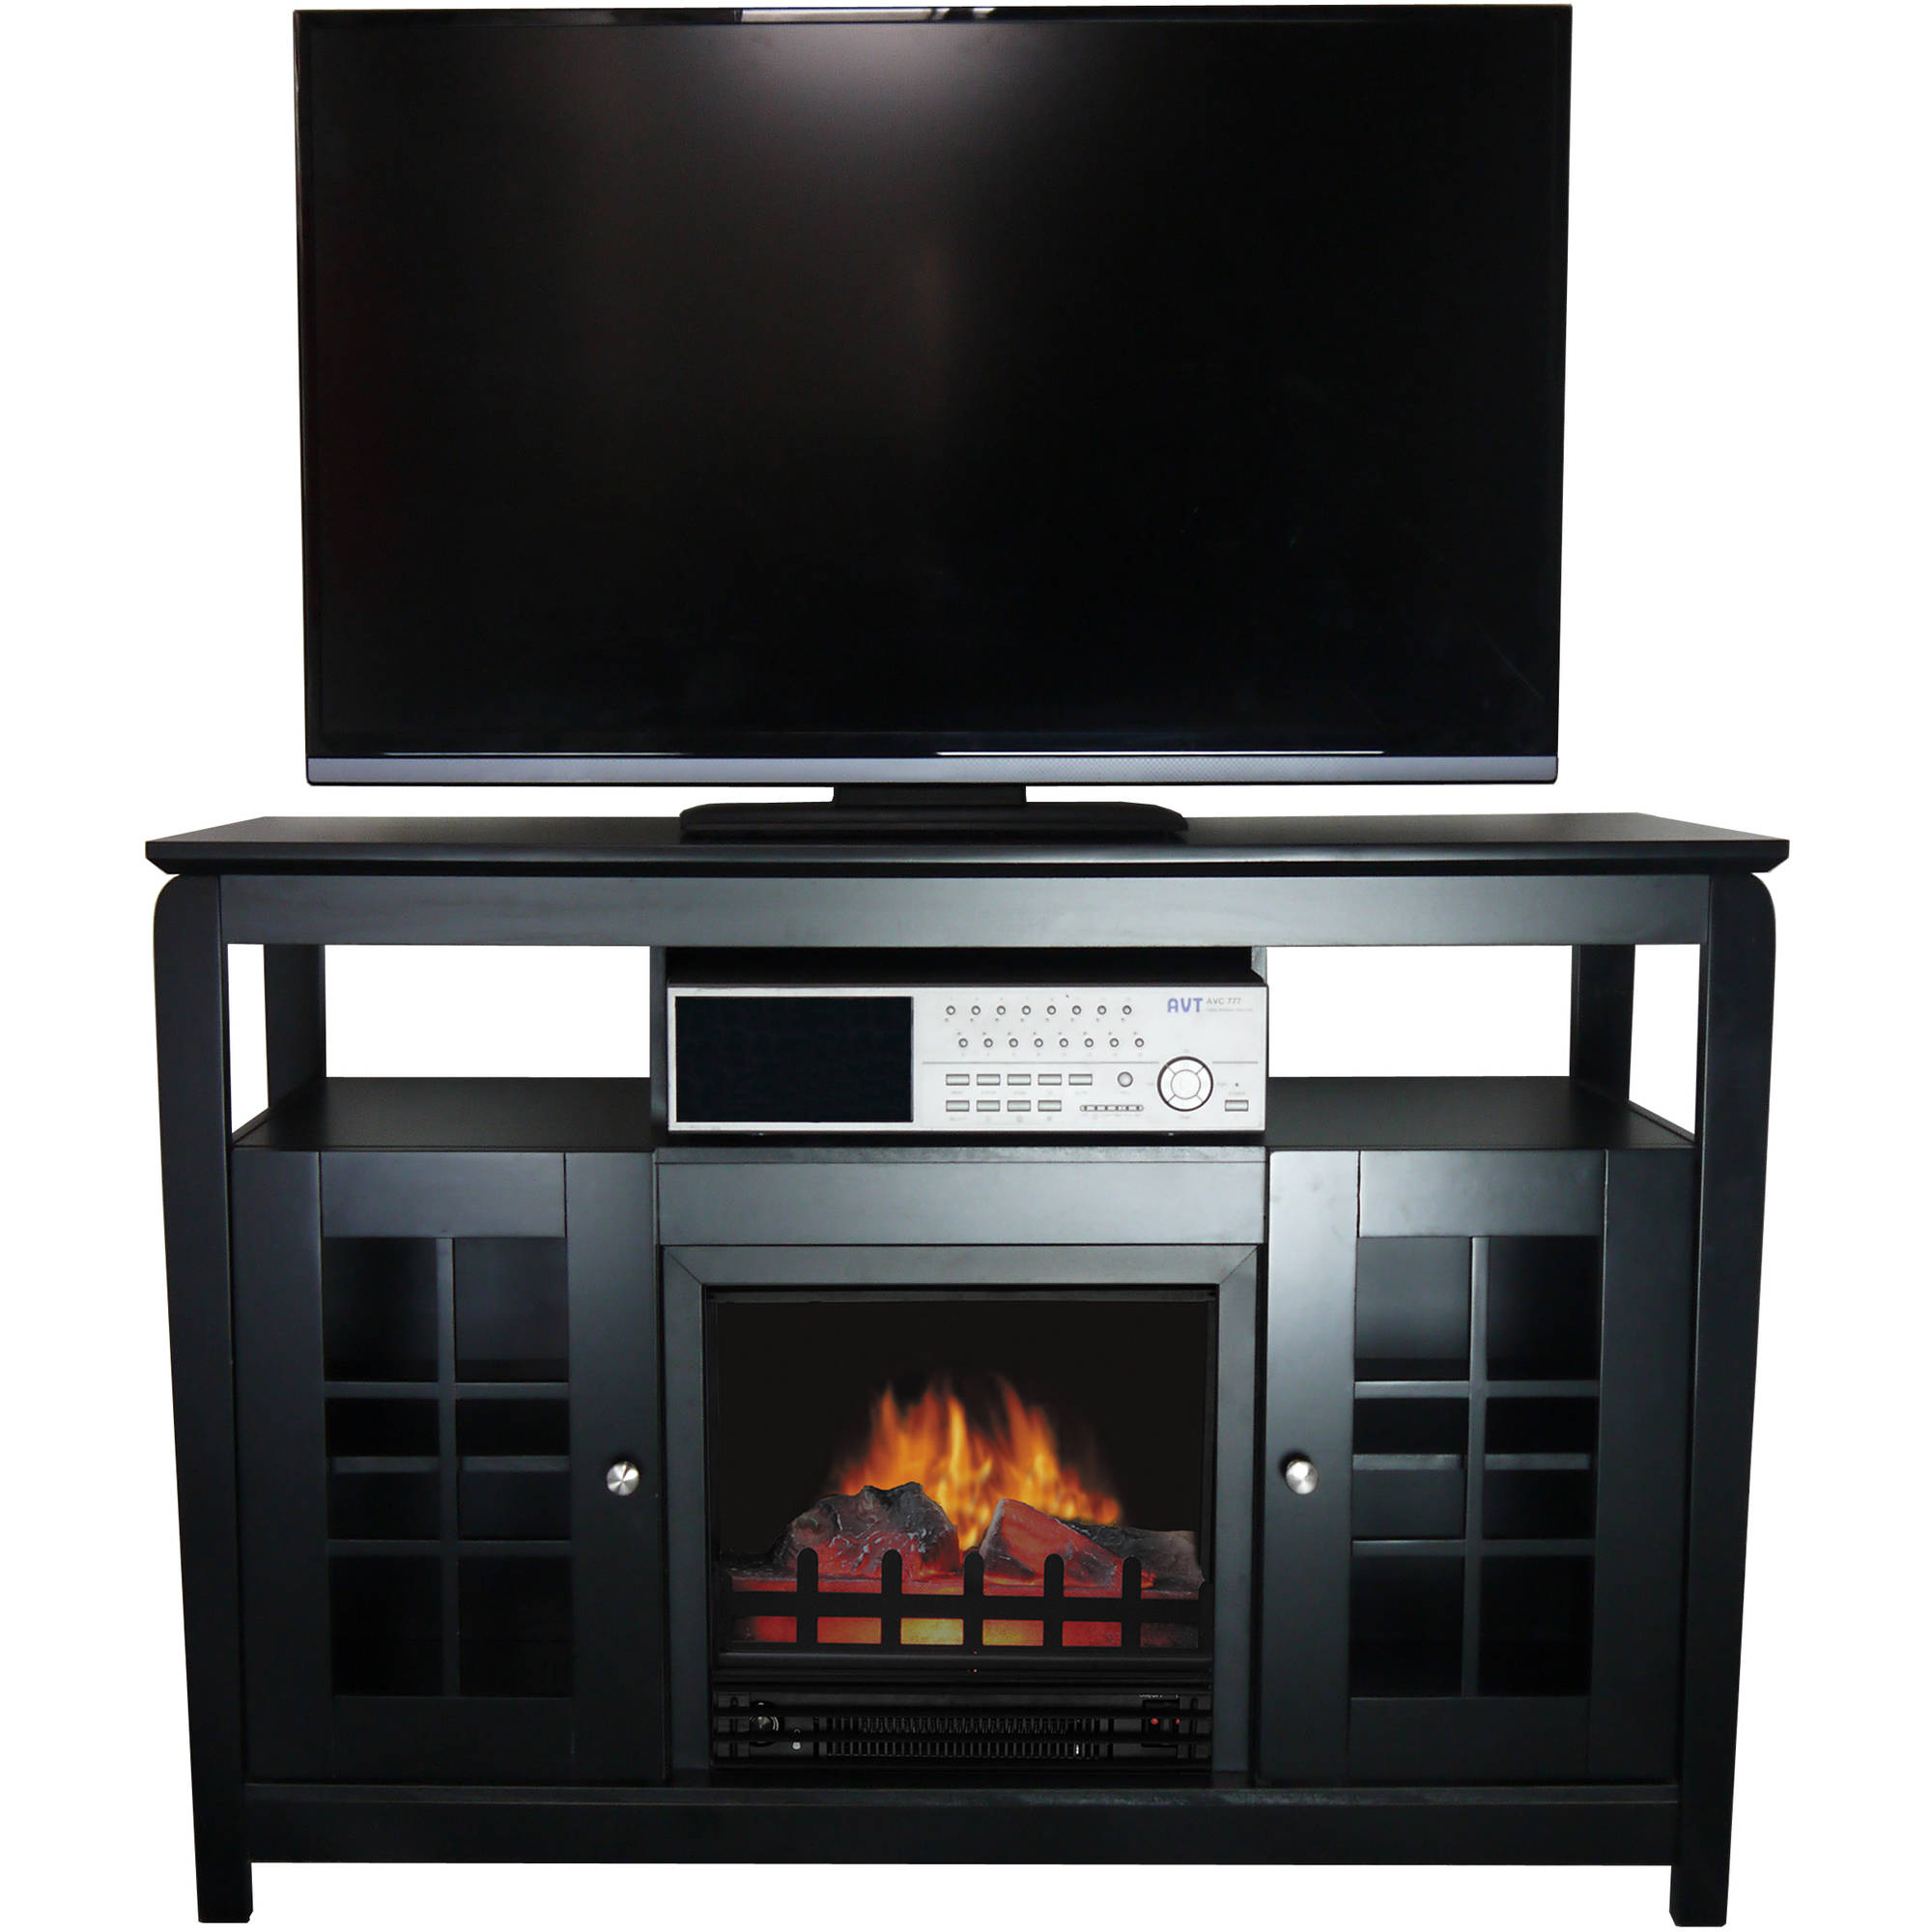 Decor Flame Fireplace Walnut For Tv S Up To 42